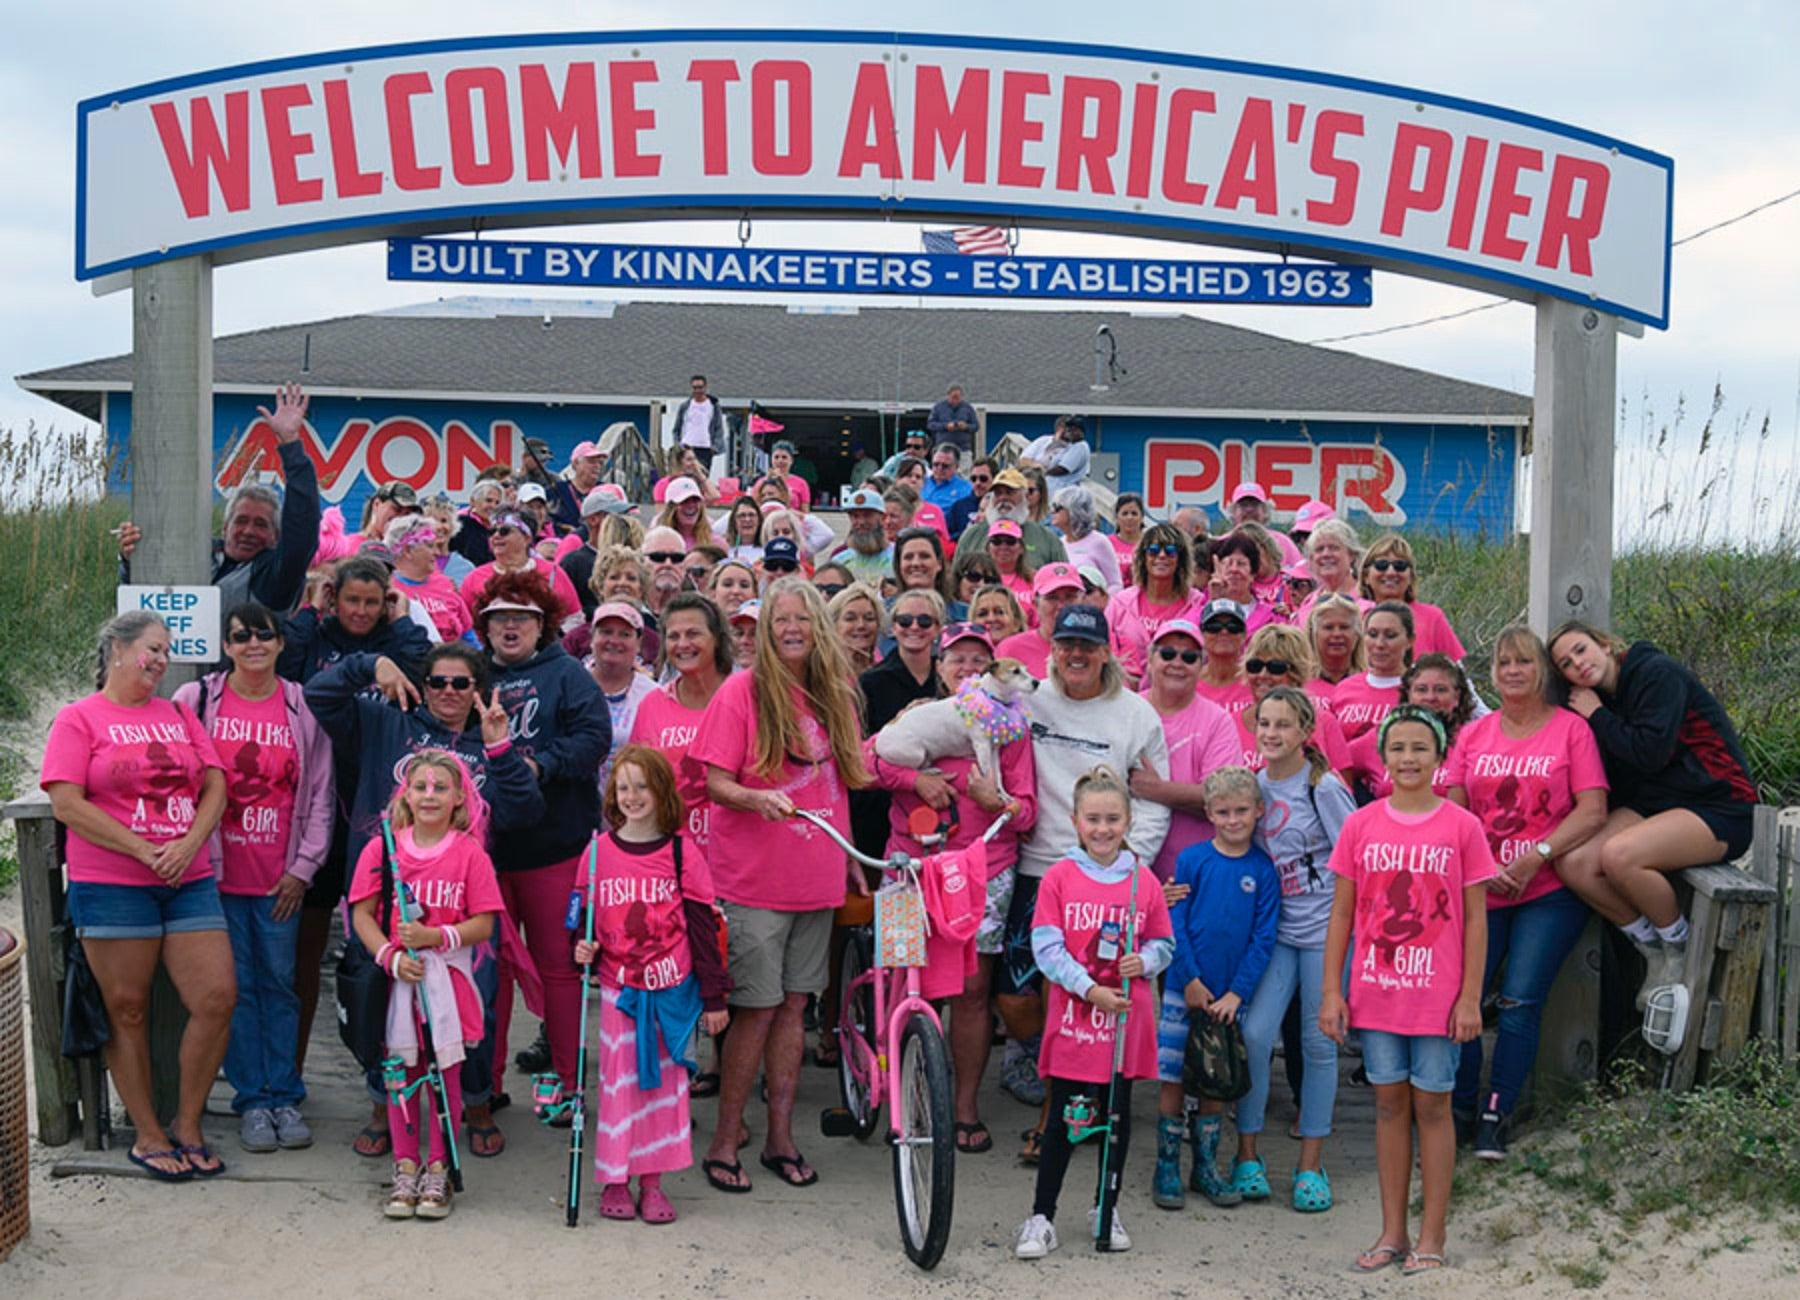 A group of women and girls in pink clothing celebrating the Fish Like A Girl all-ladies charity fishing tournament at the Avon Fishing Pier.